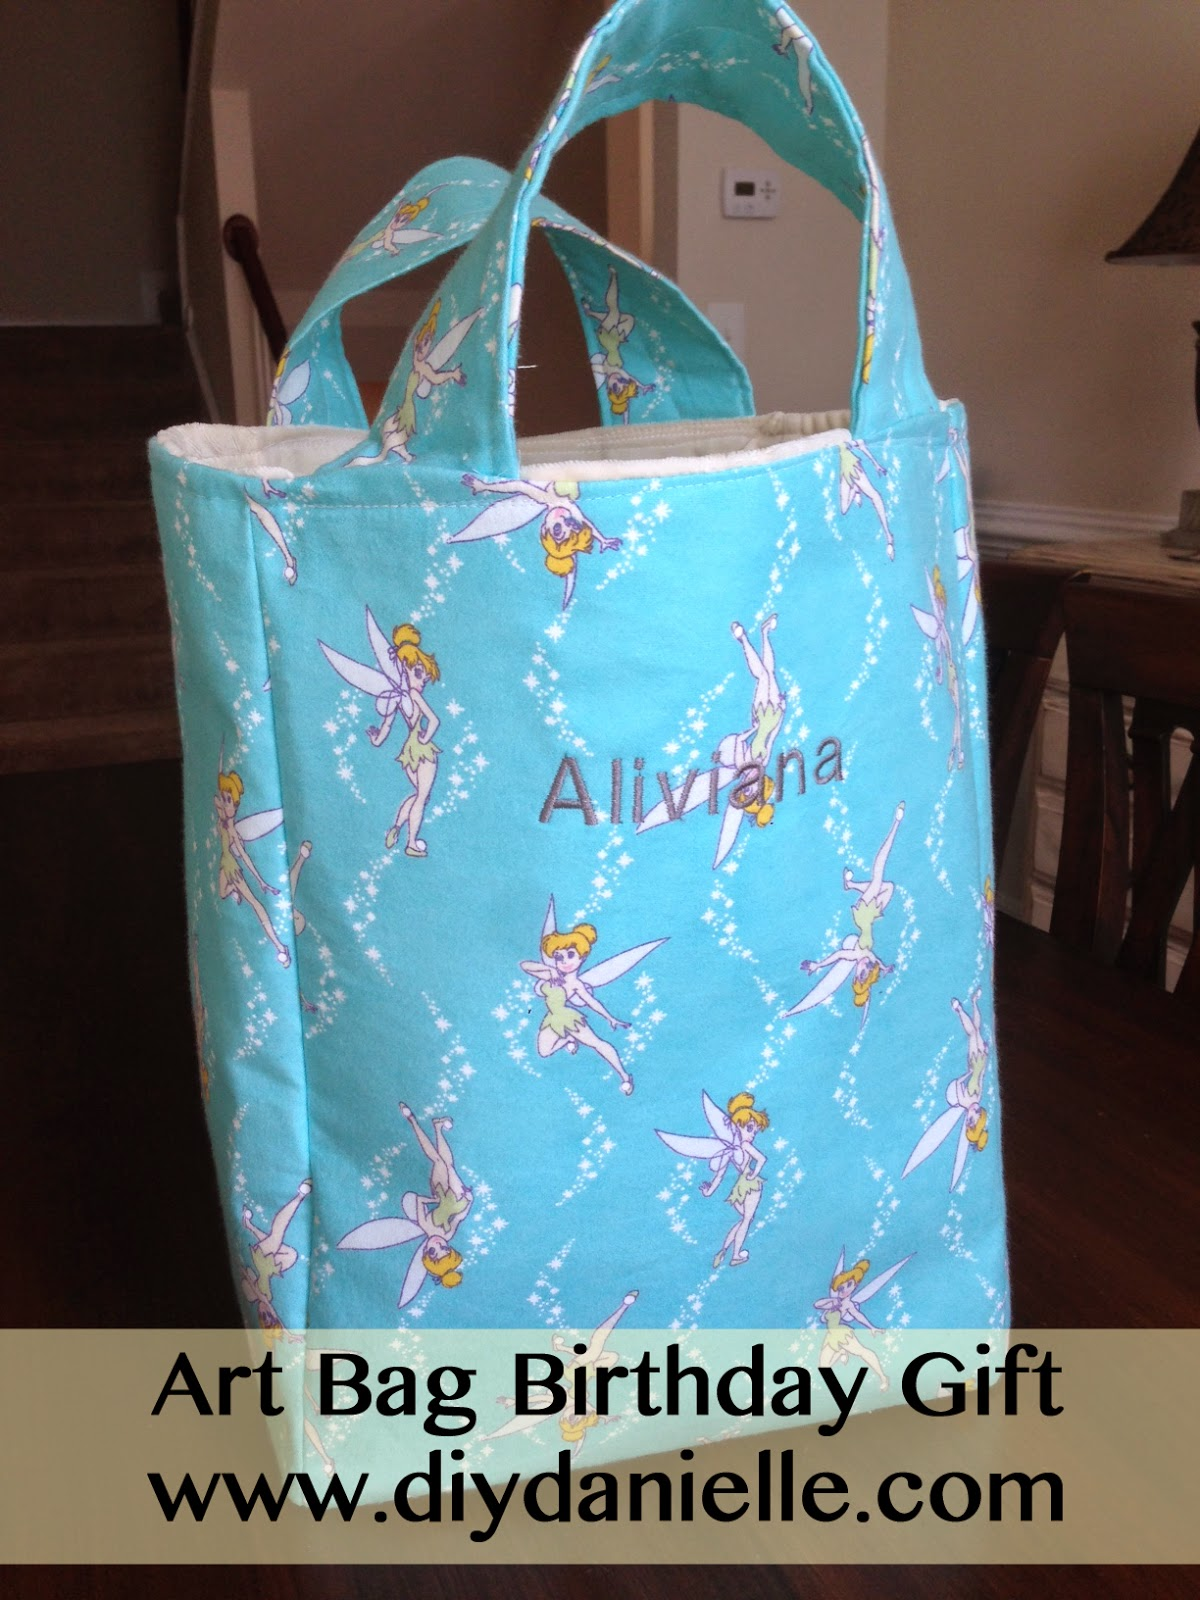 Art Bag Birthday Gift for a 3 year old